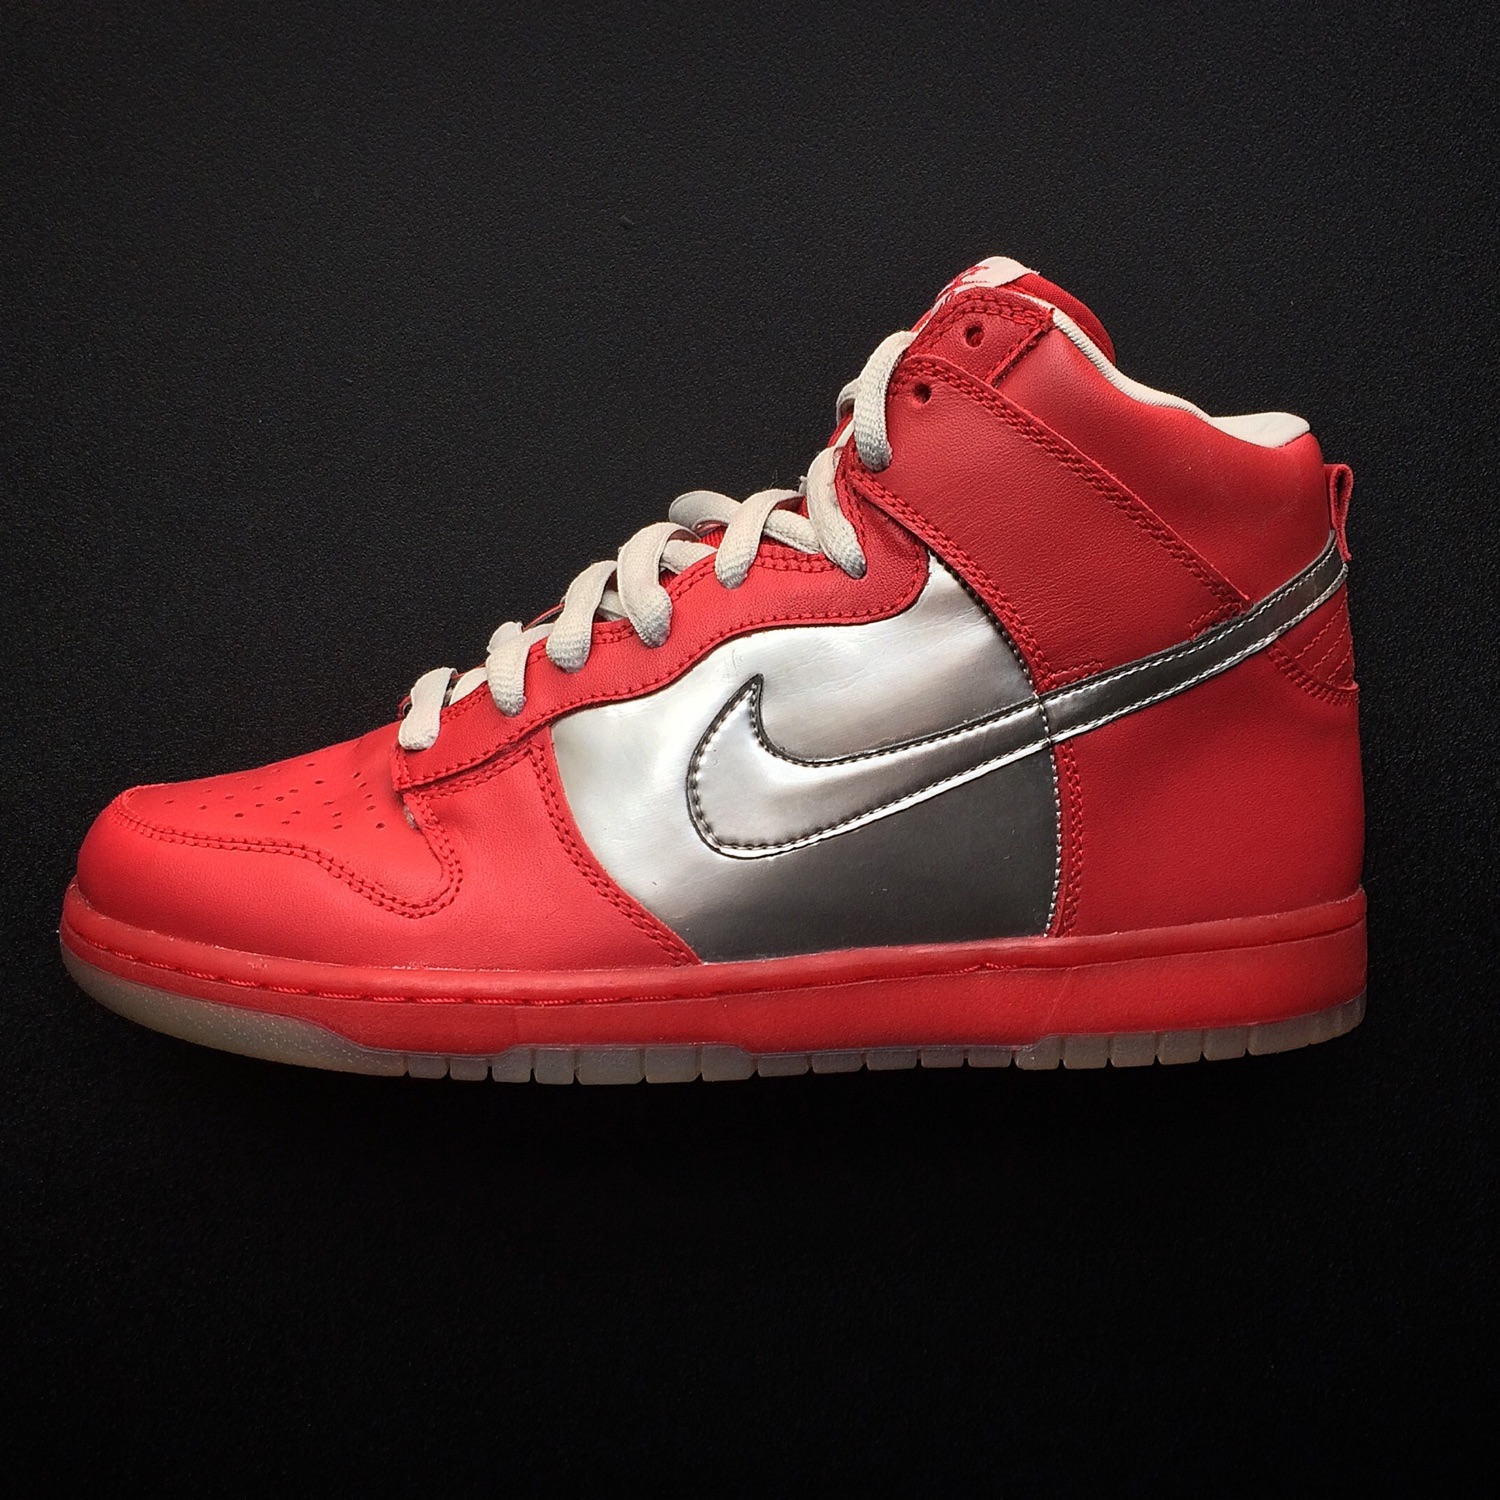 reputable site 3d336 fcd8e Nike Dunk High Pro Sb